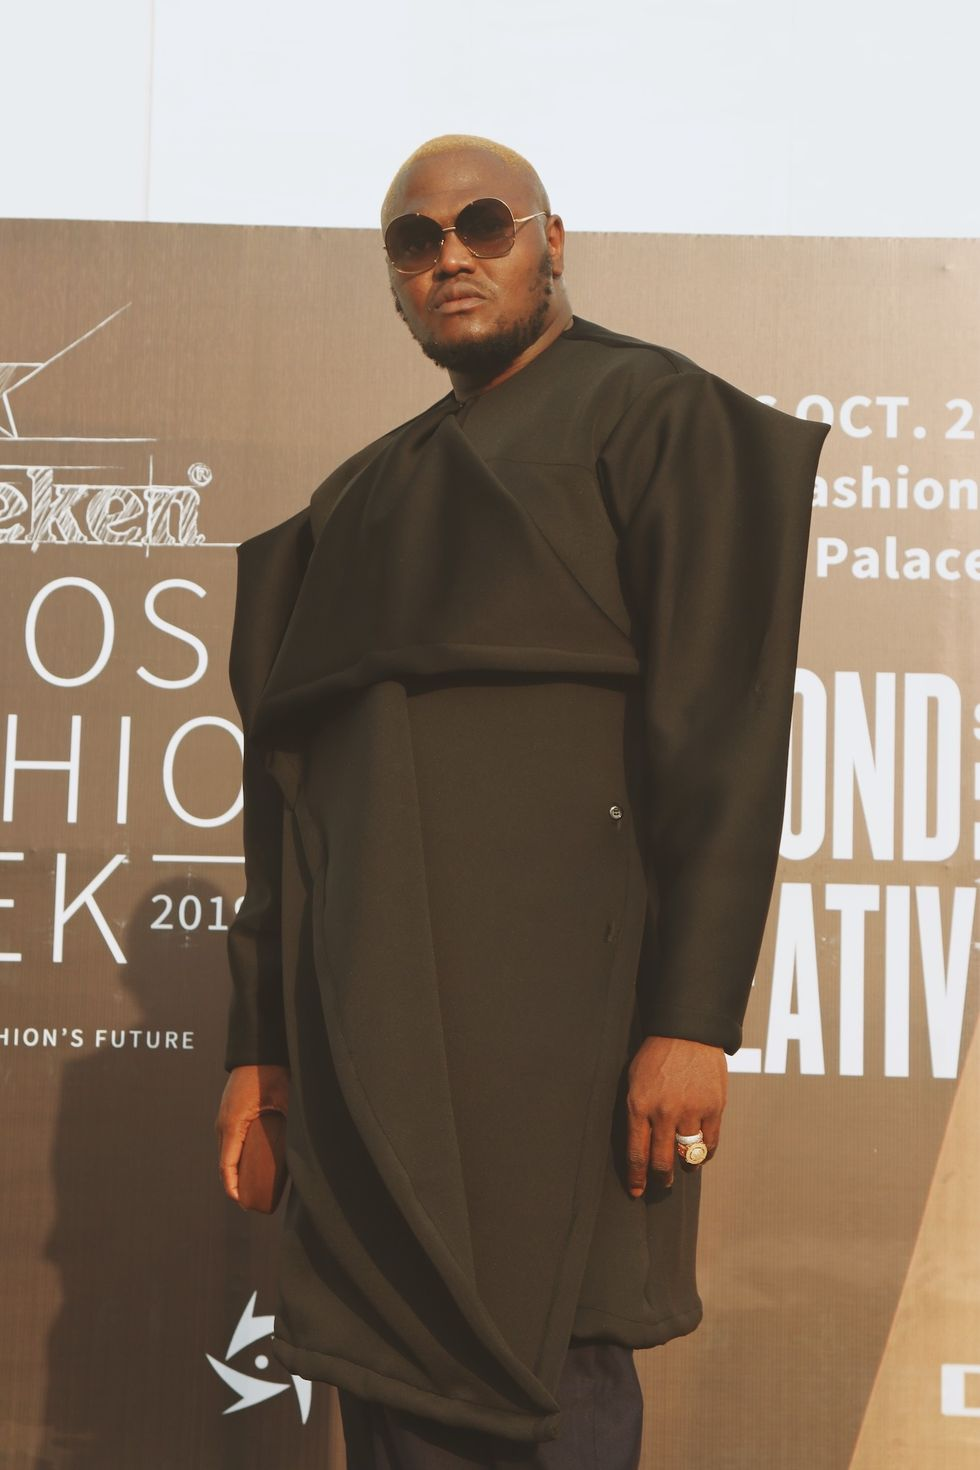 Tall Nigerian man wearing a structural black coat and big sunglasses at Lagos Fashion Week 2019